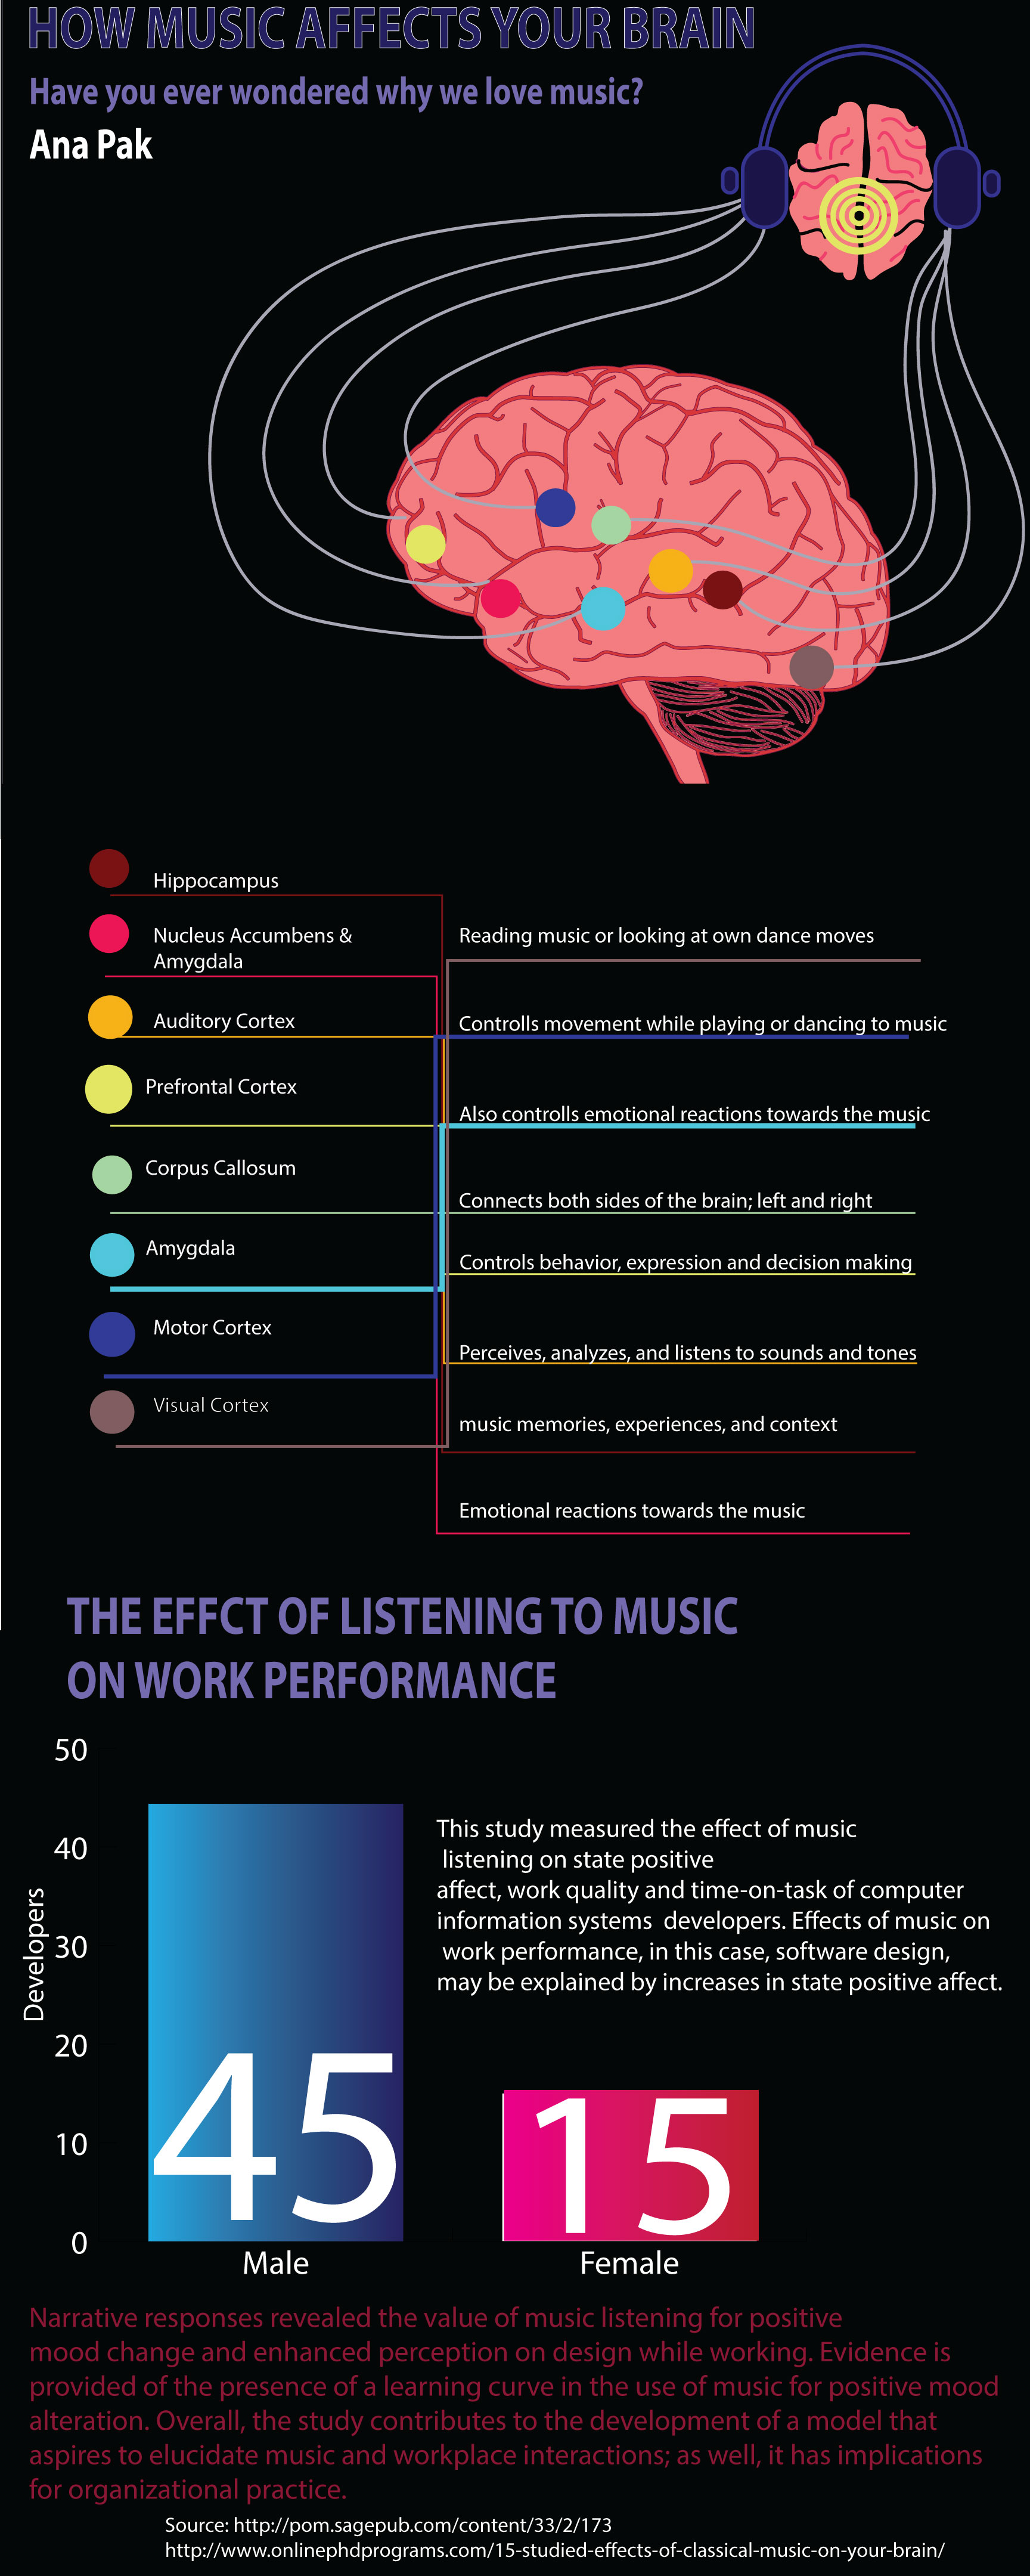 an analysis of the effects of online music download in the music and recording industry Because sound recording studios are both an important component of the music industry and a sector with many small firms, additional data on this sector was procured from referenceusa (referenceusa, 2010.